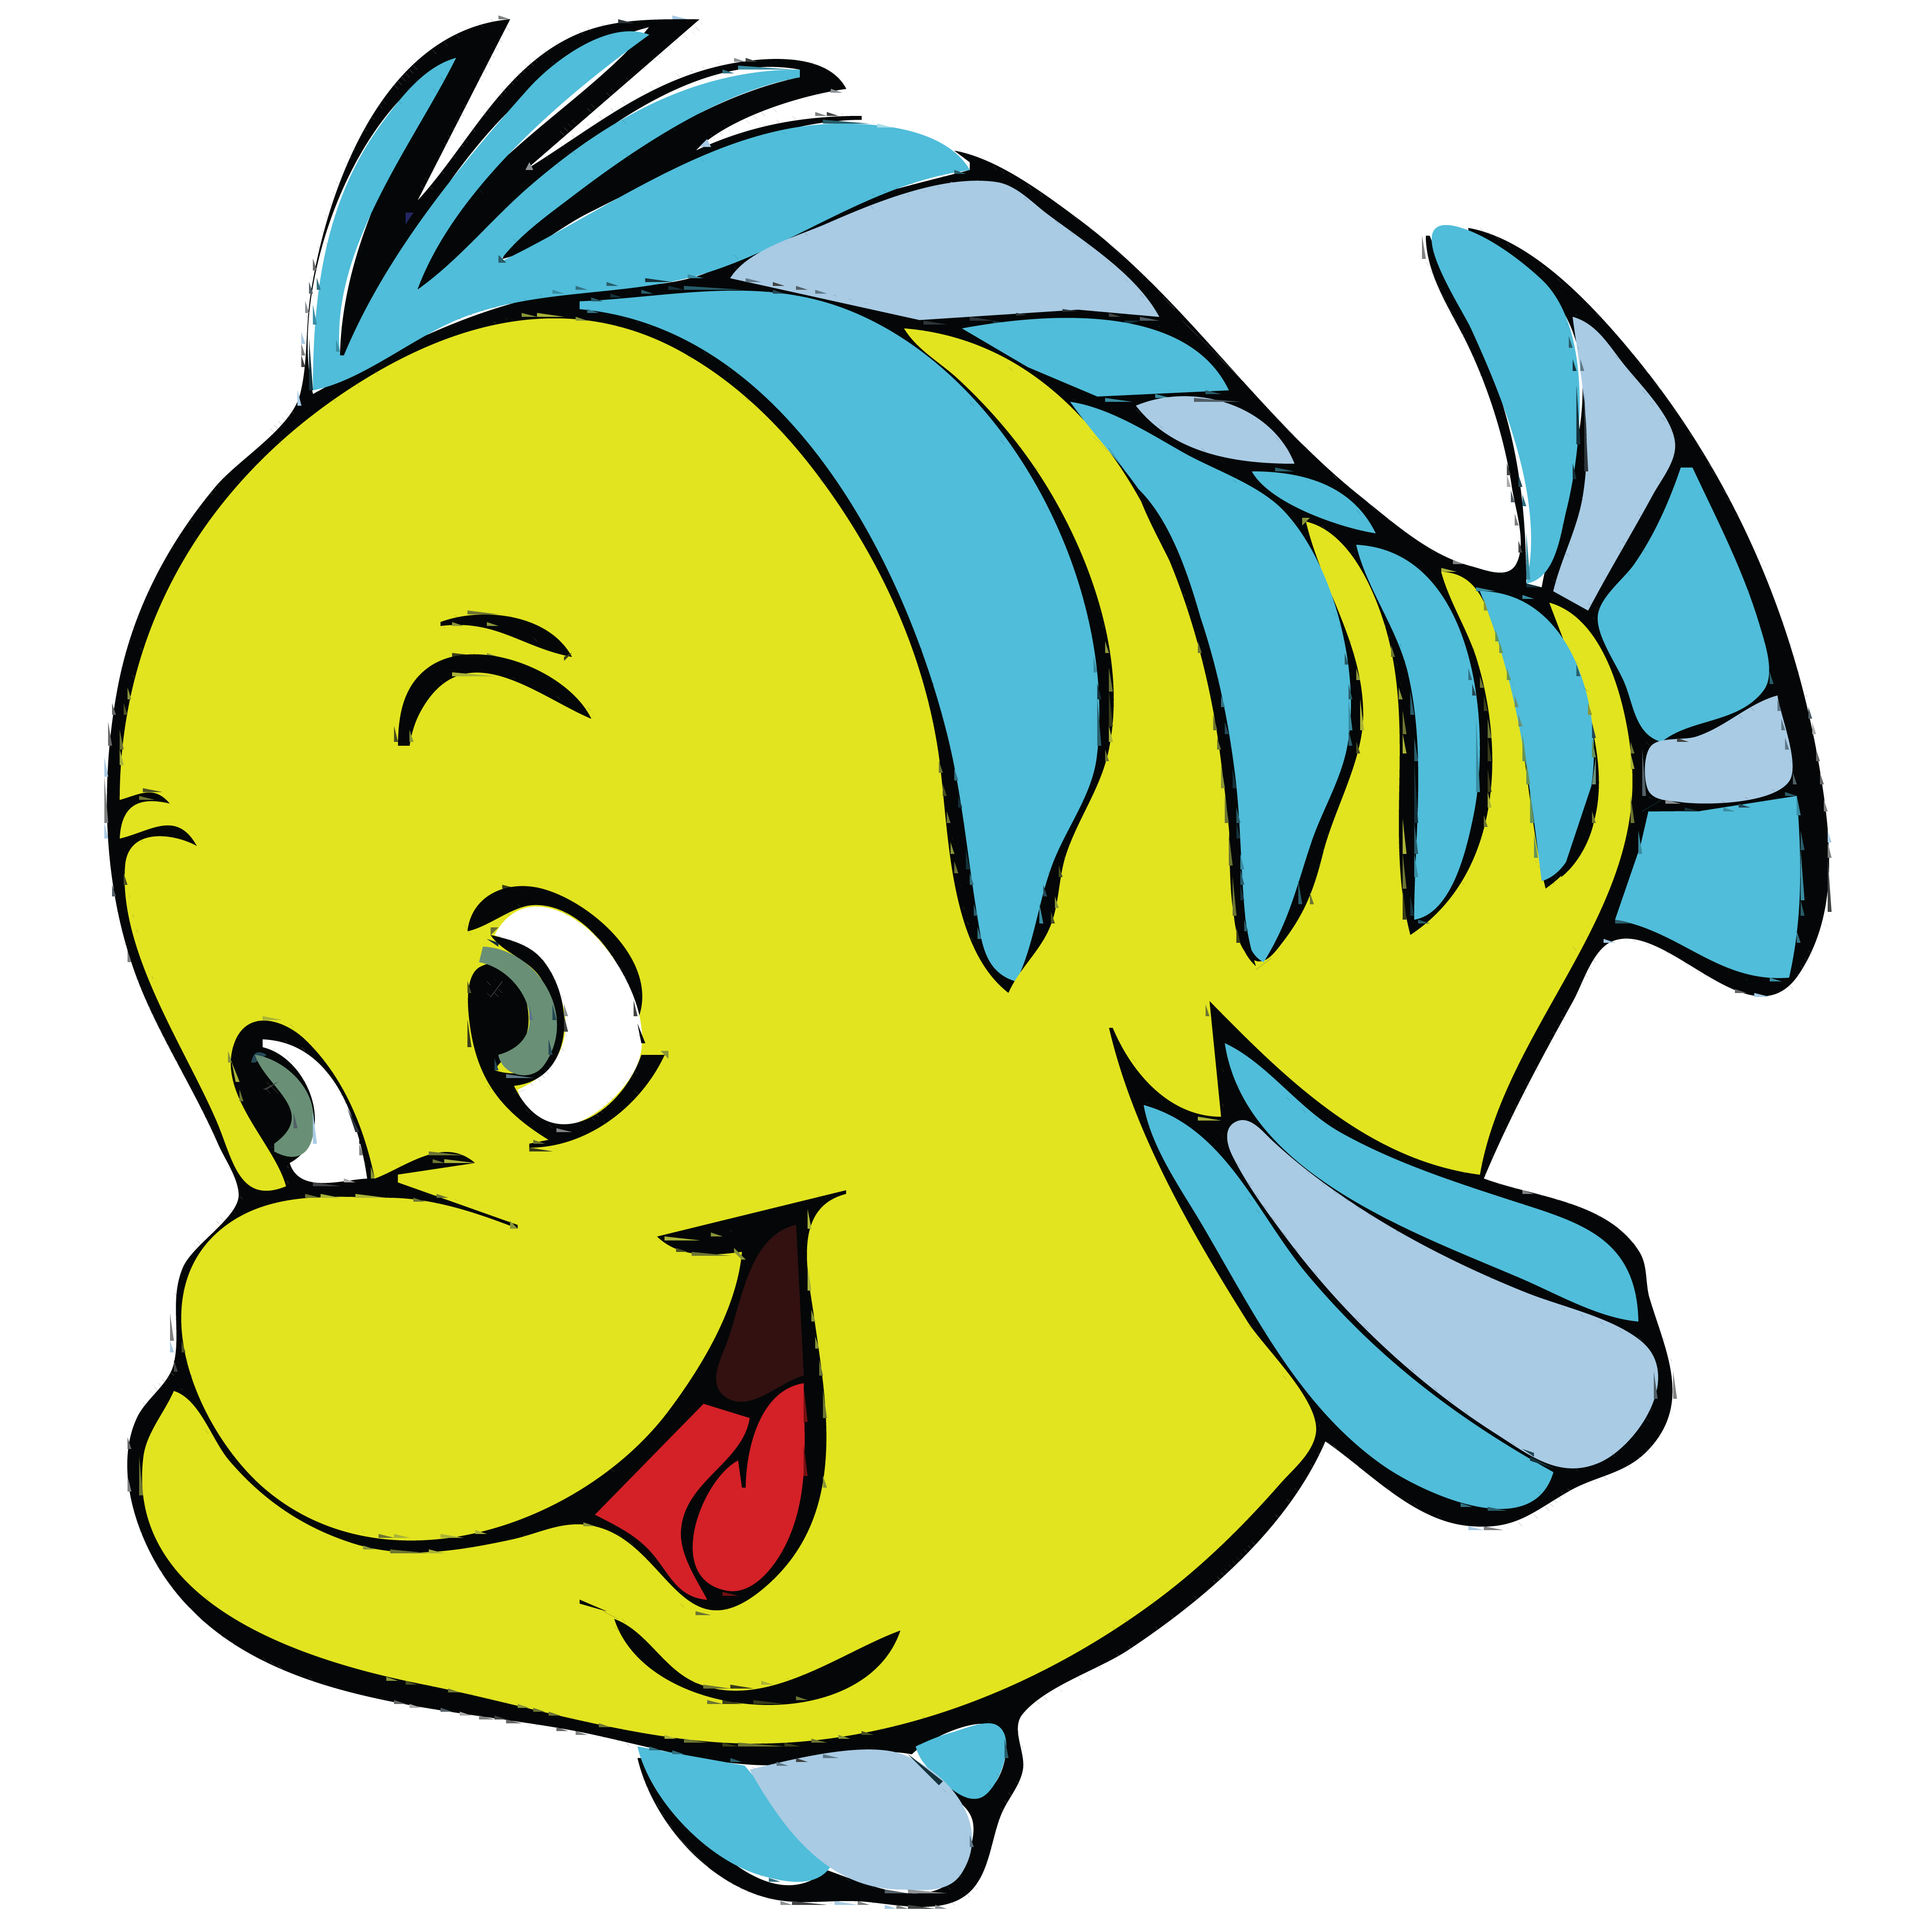 4000x4000 Clipart Of A Fish From Little Mermaid, Flounder